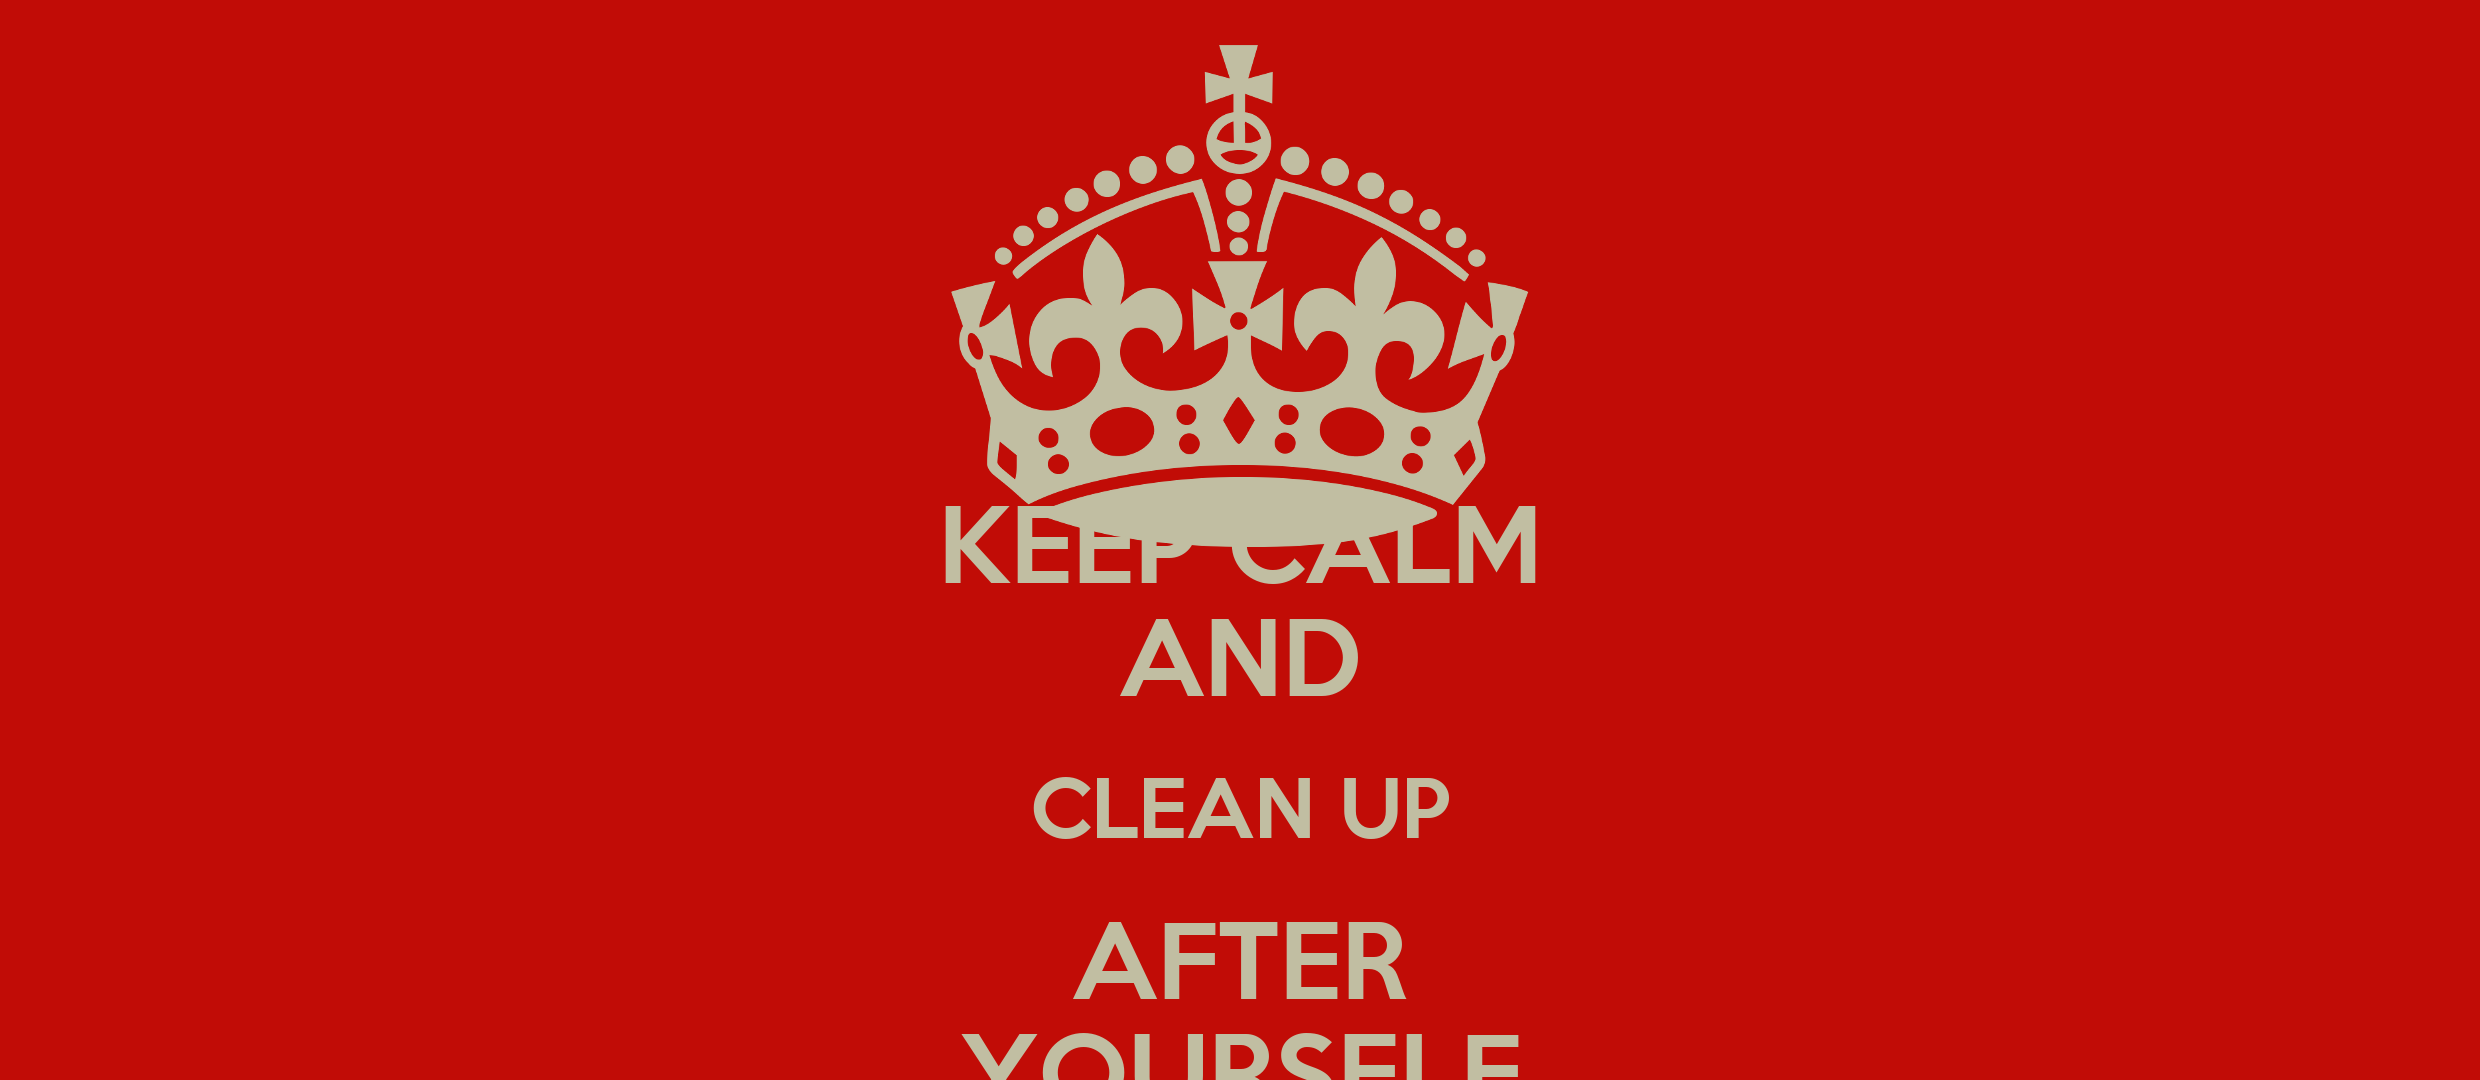 KEEP CALM AND CLEAN UP AFTER YOURSELF - KEEP CALM AND CARRY ON Image ... Keep Calm And Be Yourself